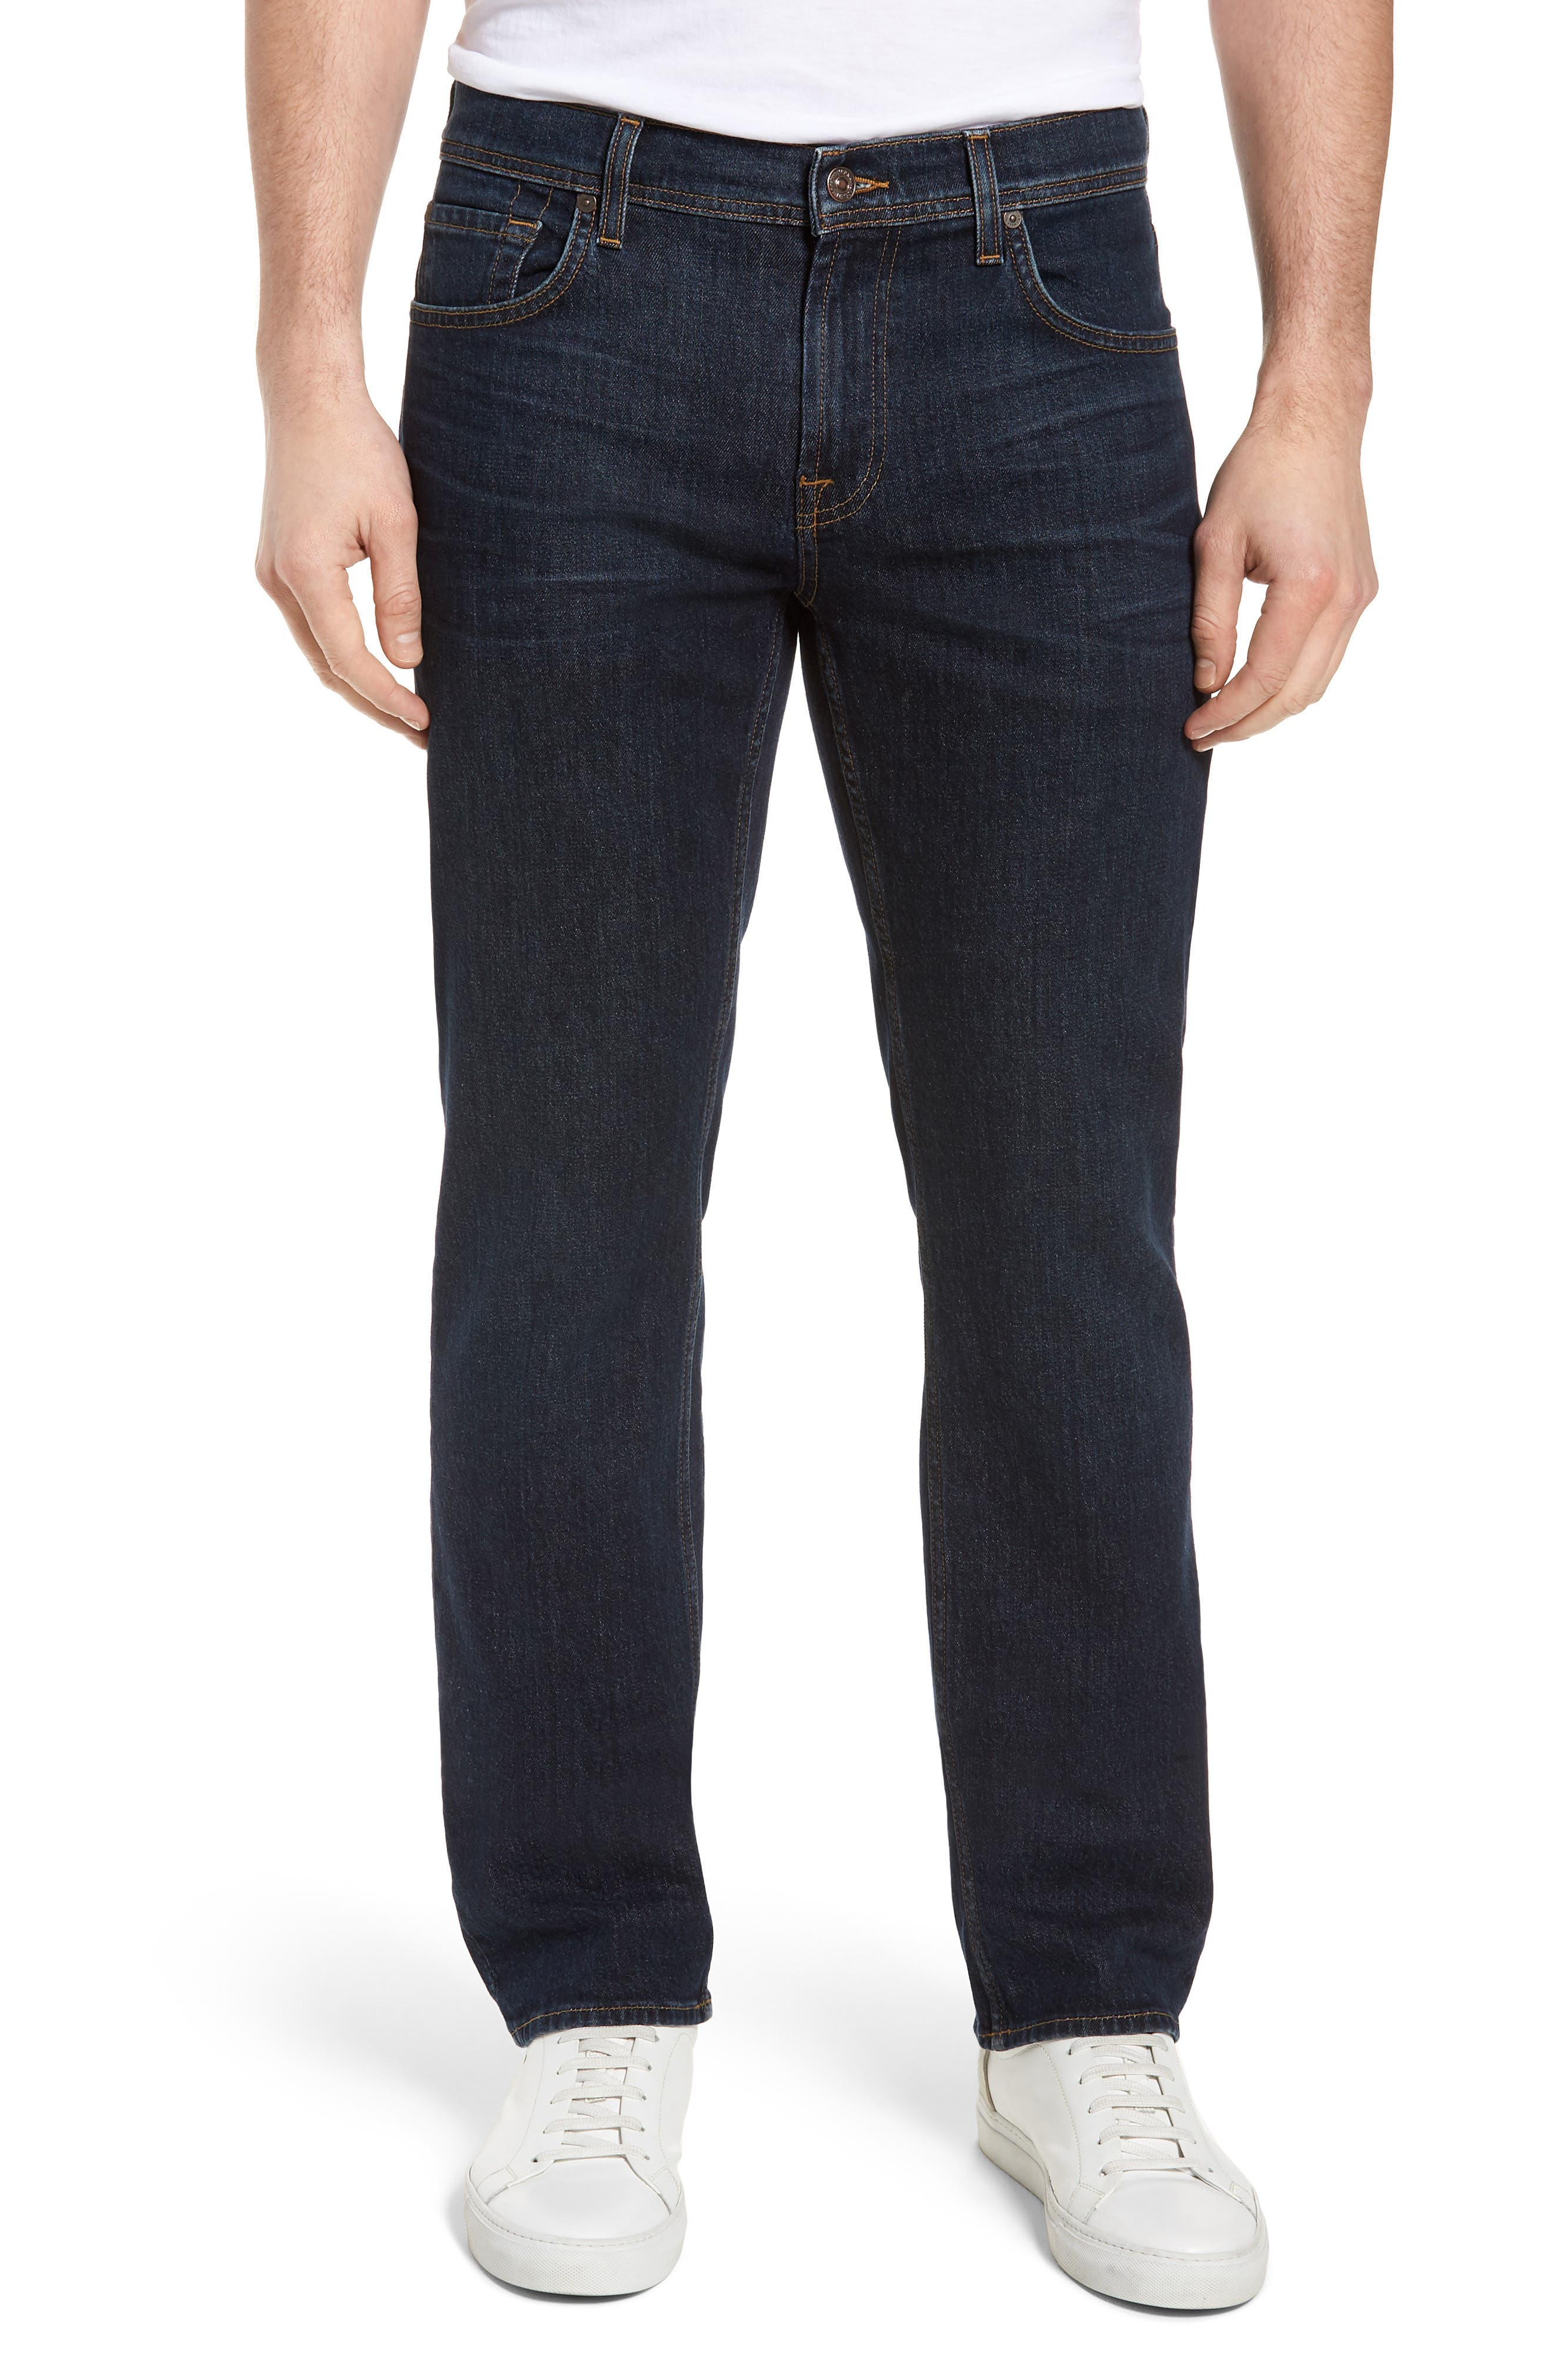 Standard Straight Leg Jeans,                             Main thumbnail 1, color,                             402